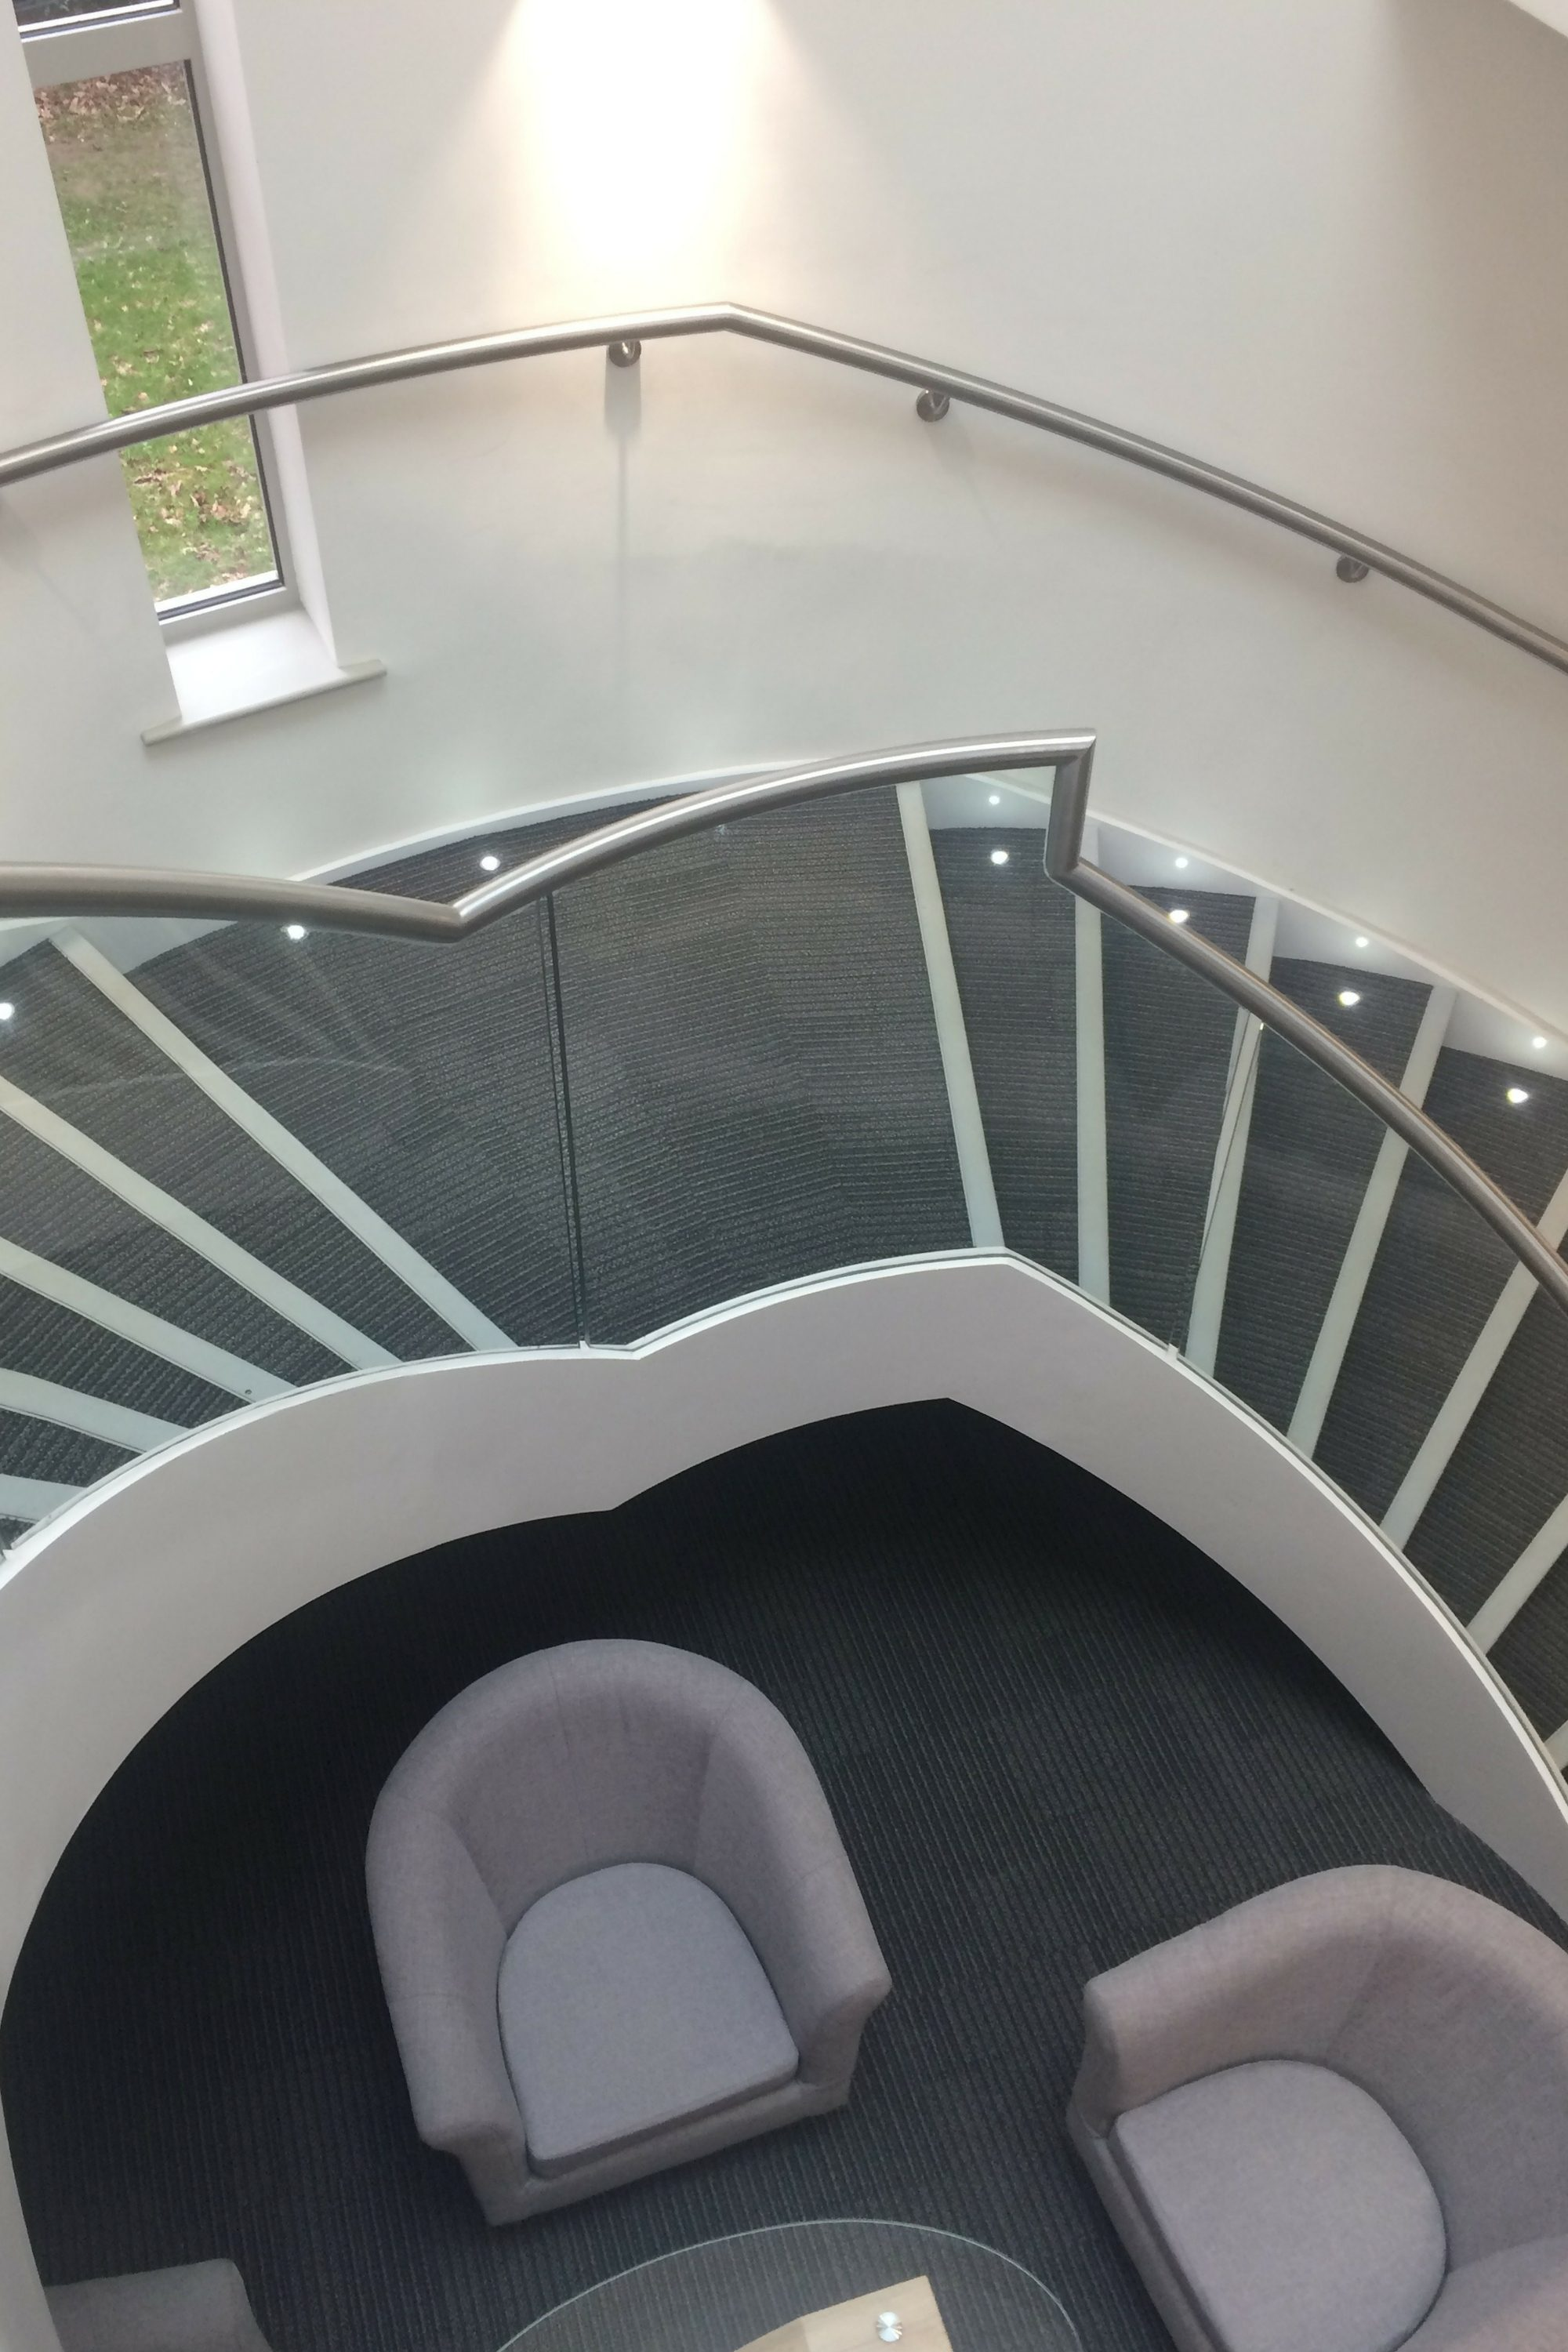 Helical staircase in a school